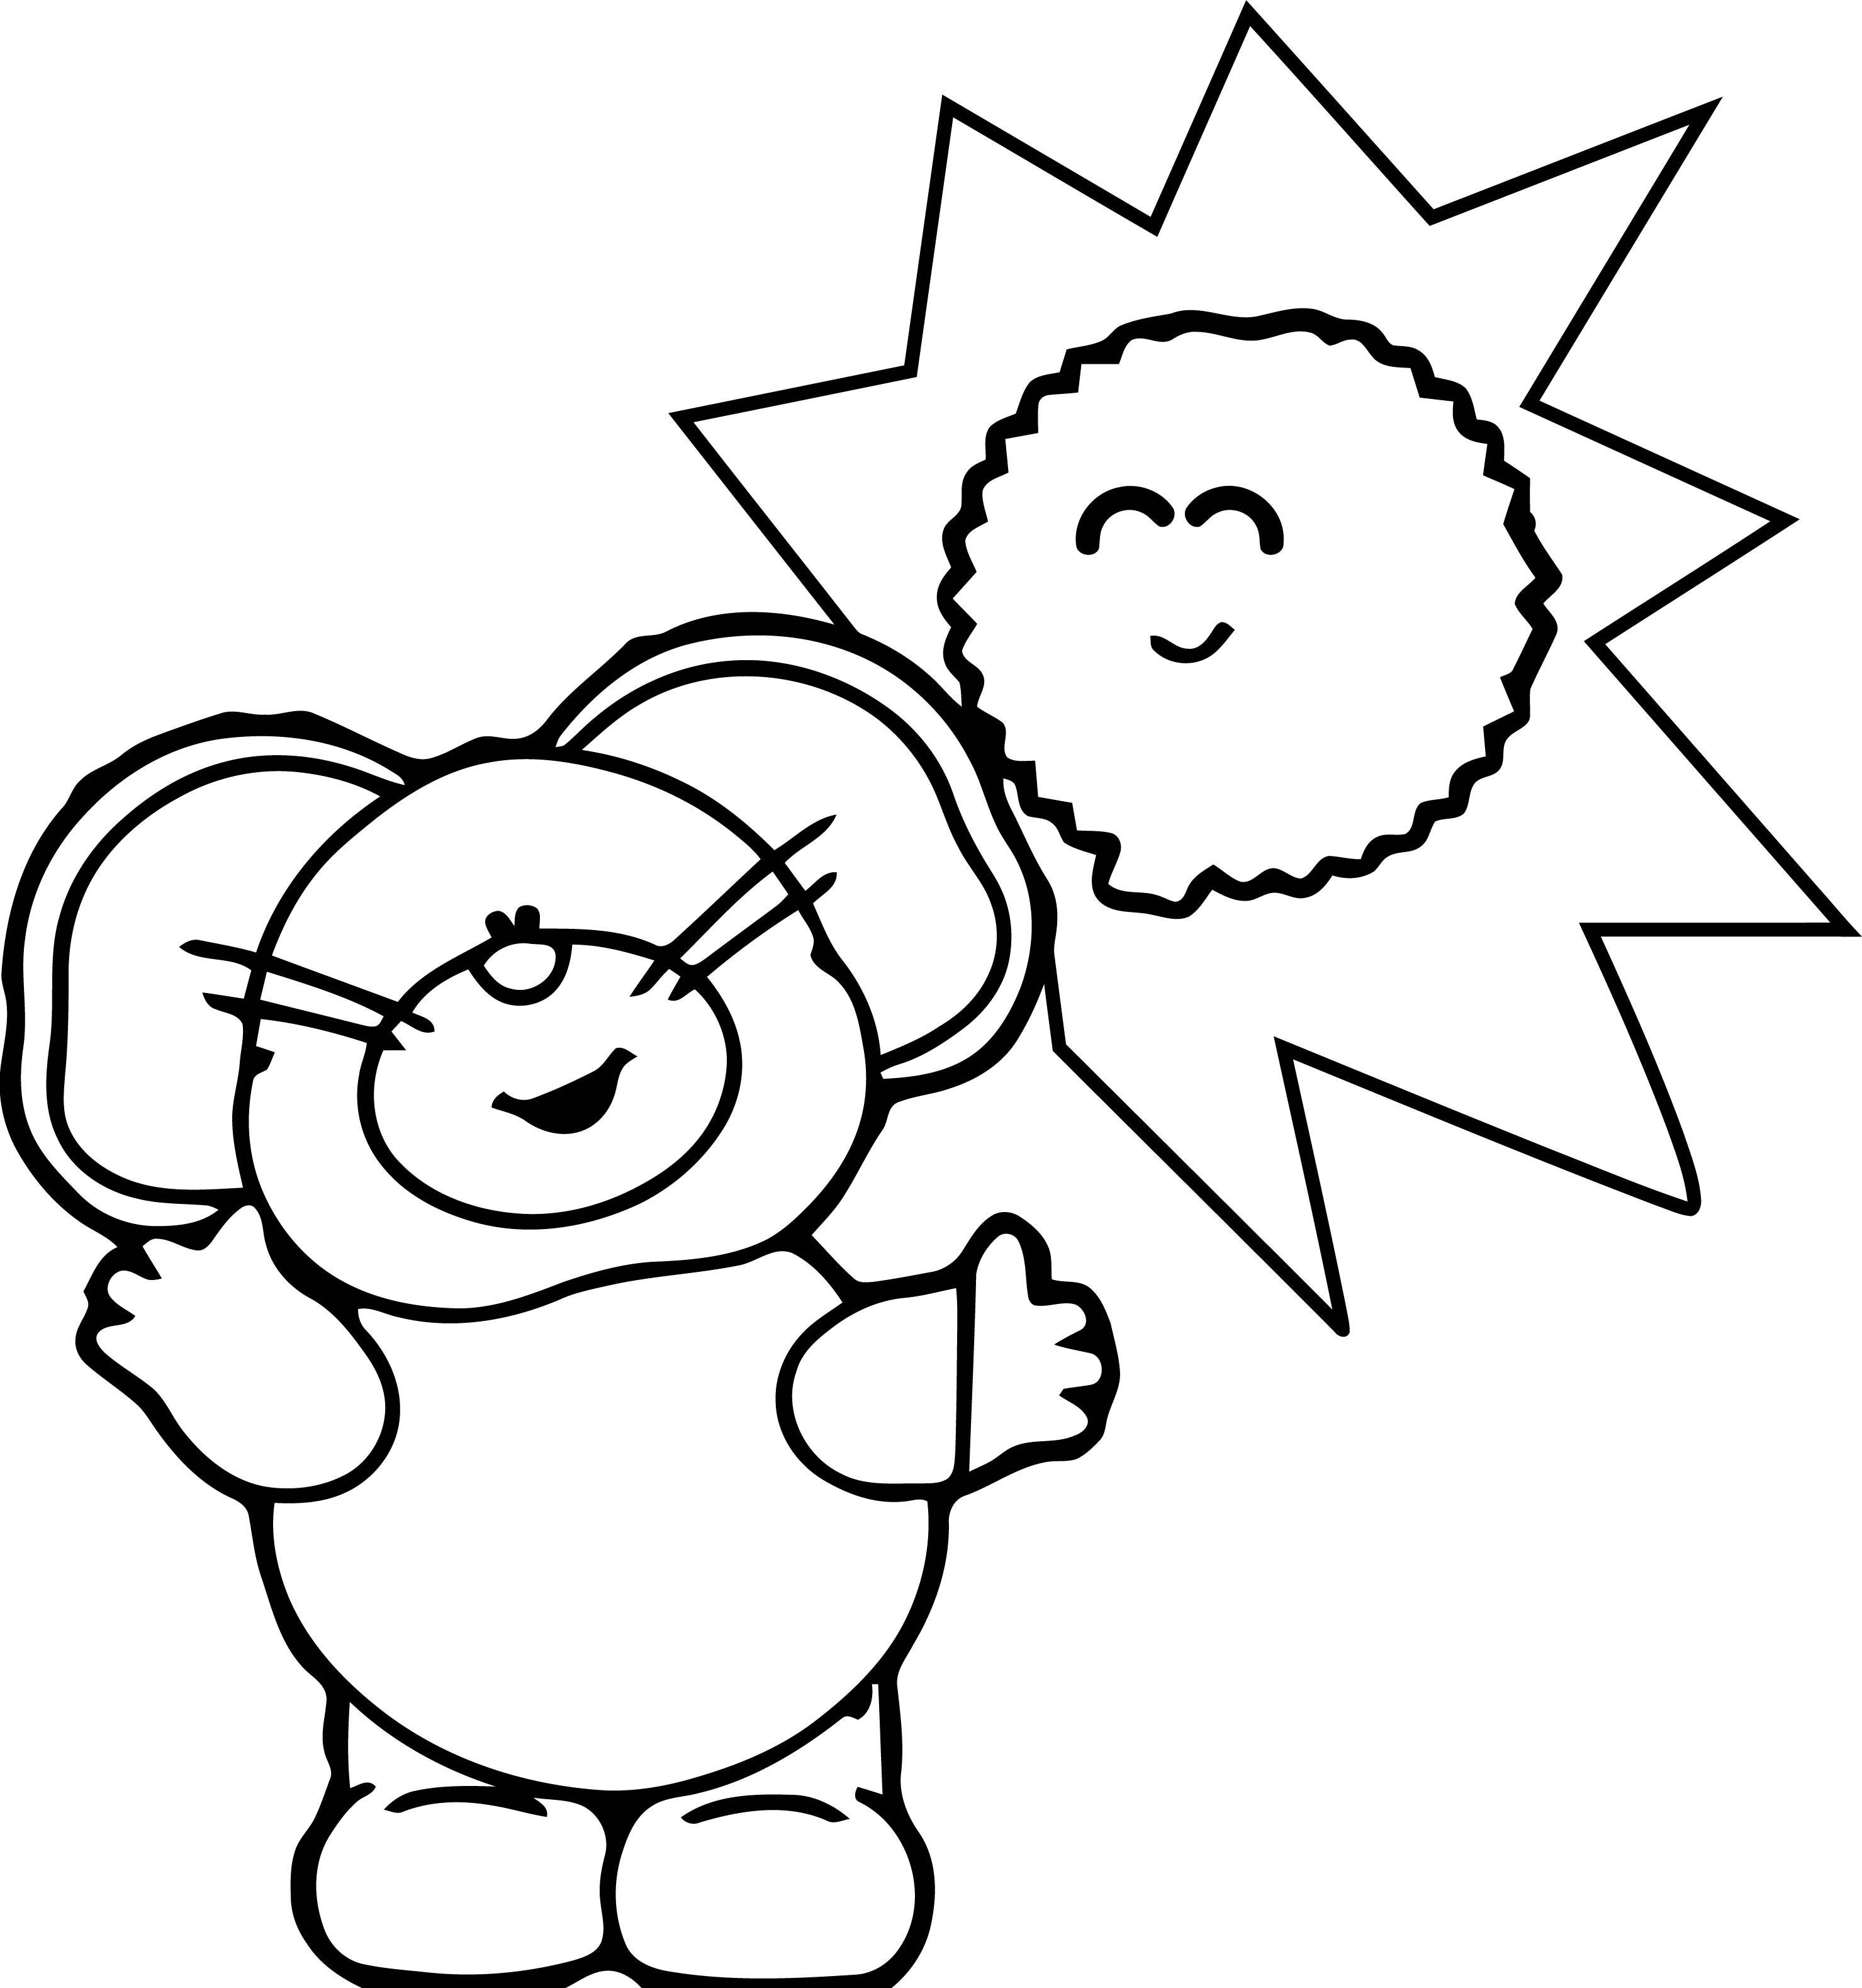 Mouse Jpeg Coloring Page 13